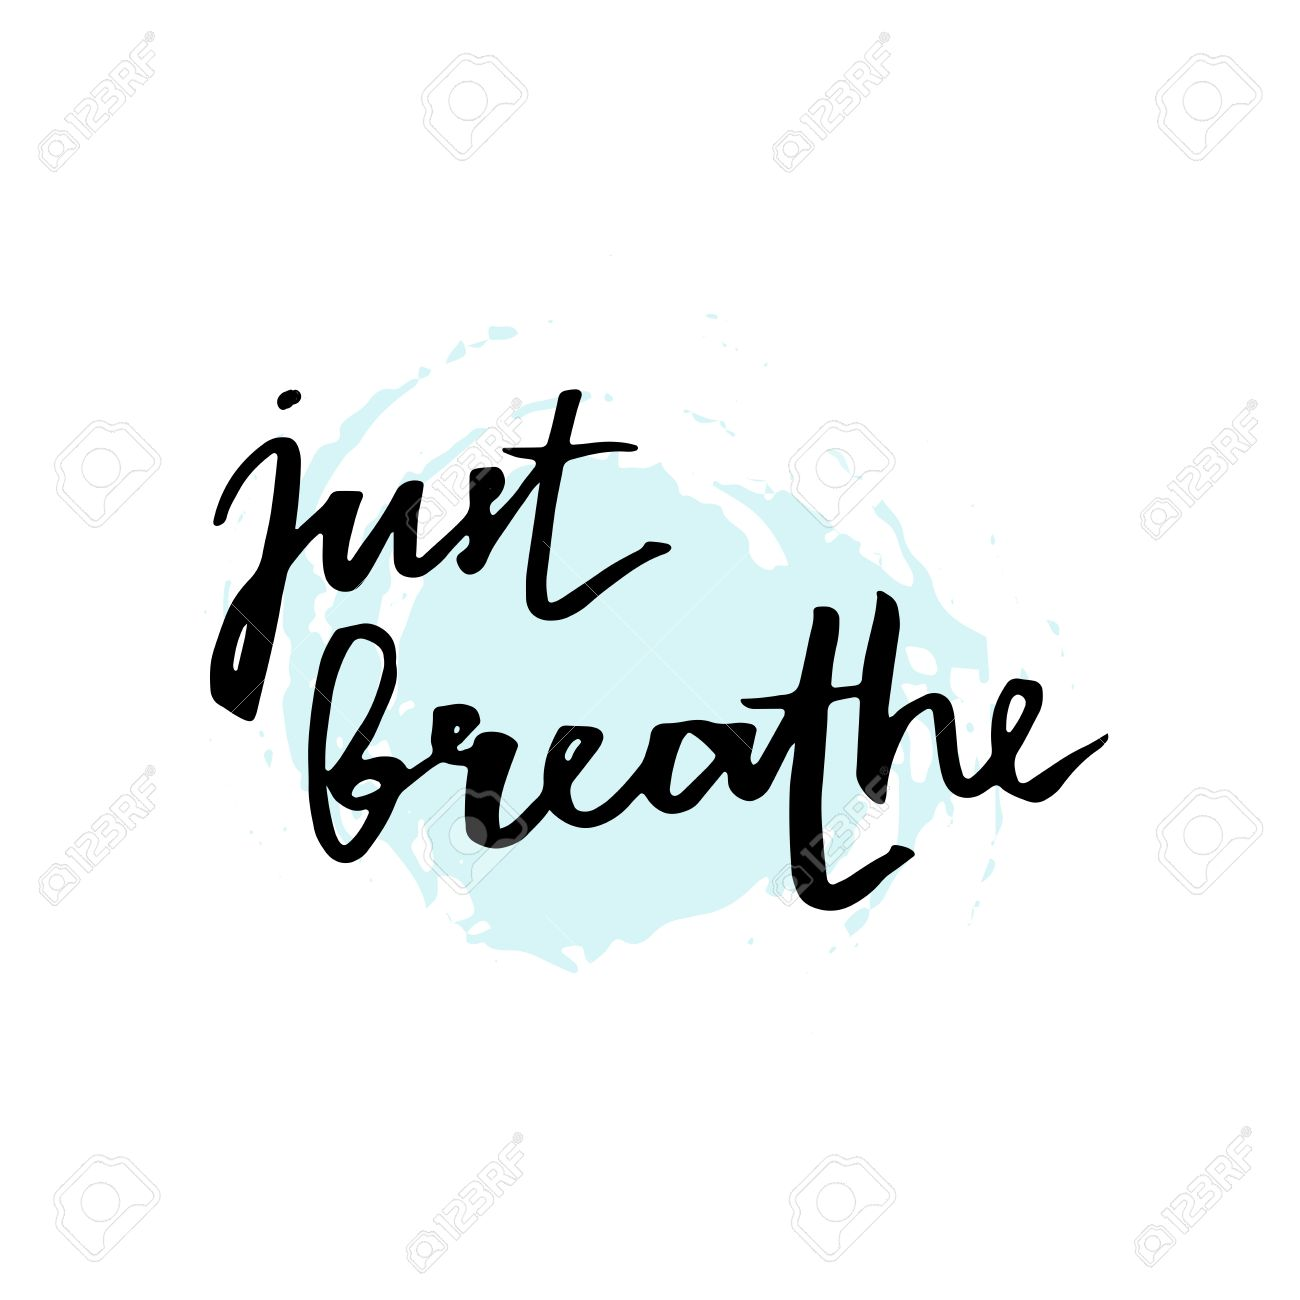 Just Breathe Inspirational Quote Calligraphy At Blue And White